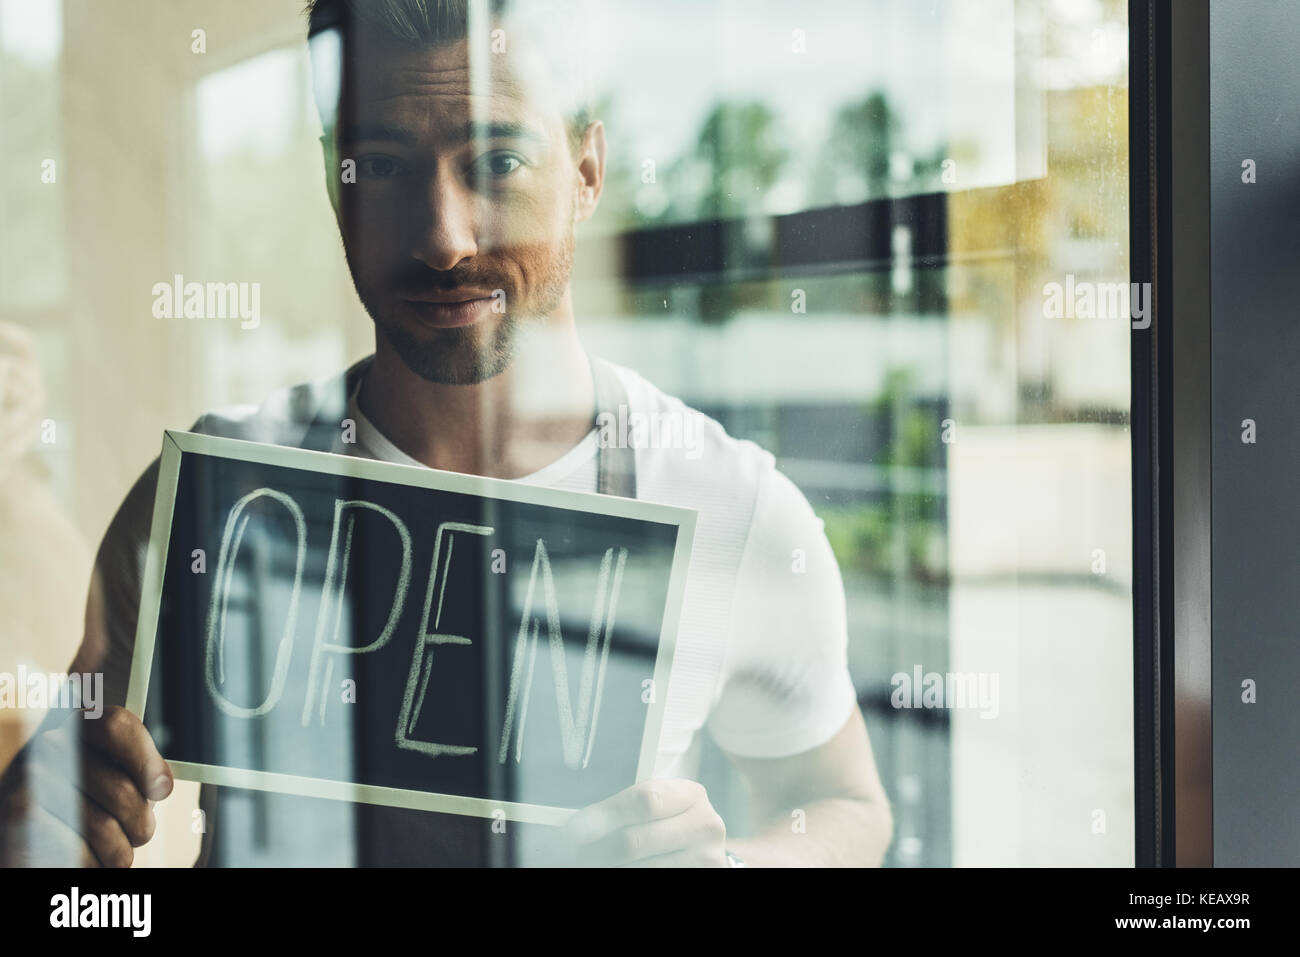 waiter holding chalkboard with open word - Stock Image